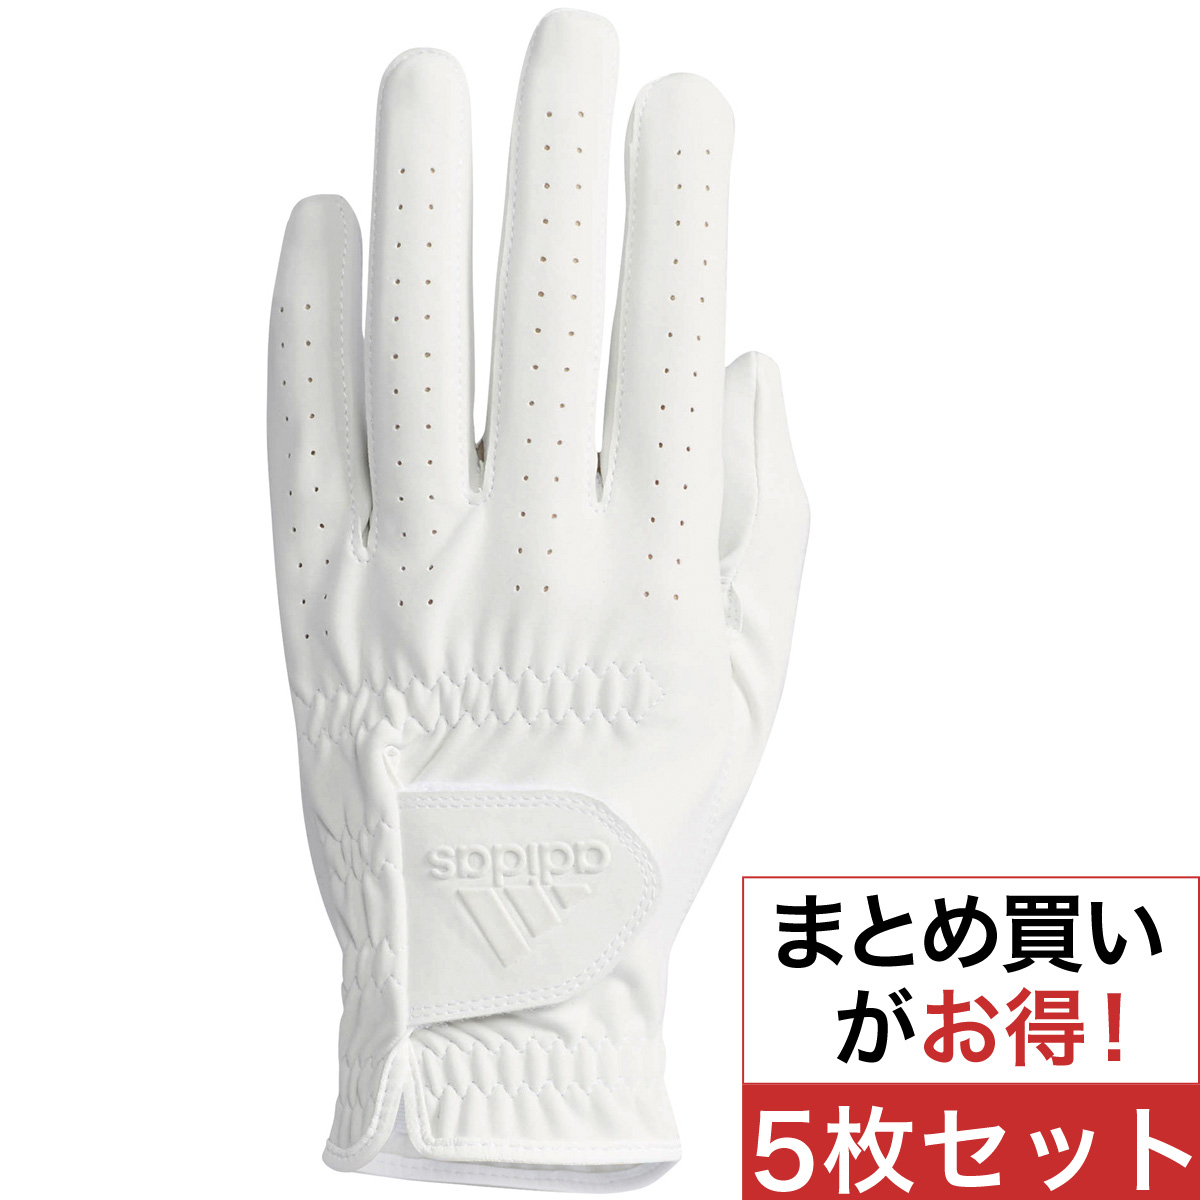 ULTIMATE Synthetic グローブ 5枚セット